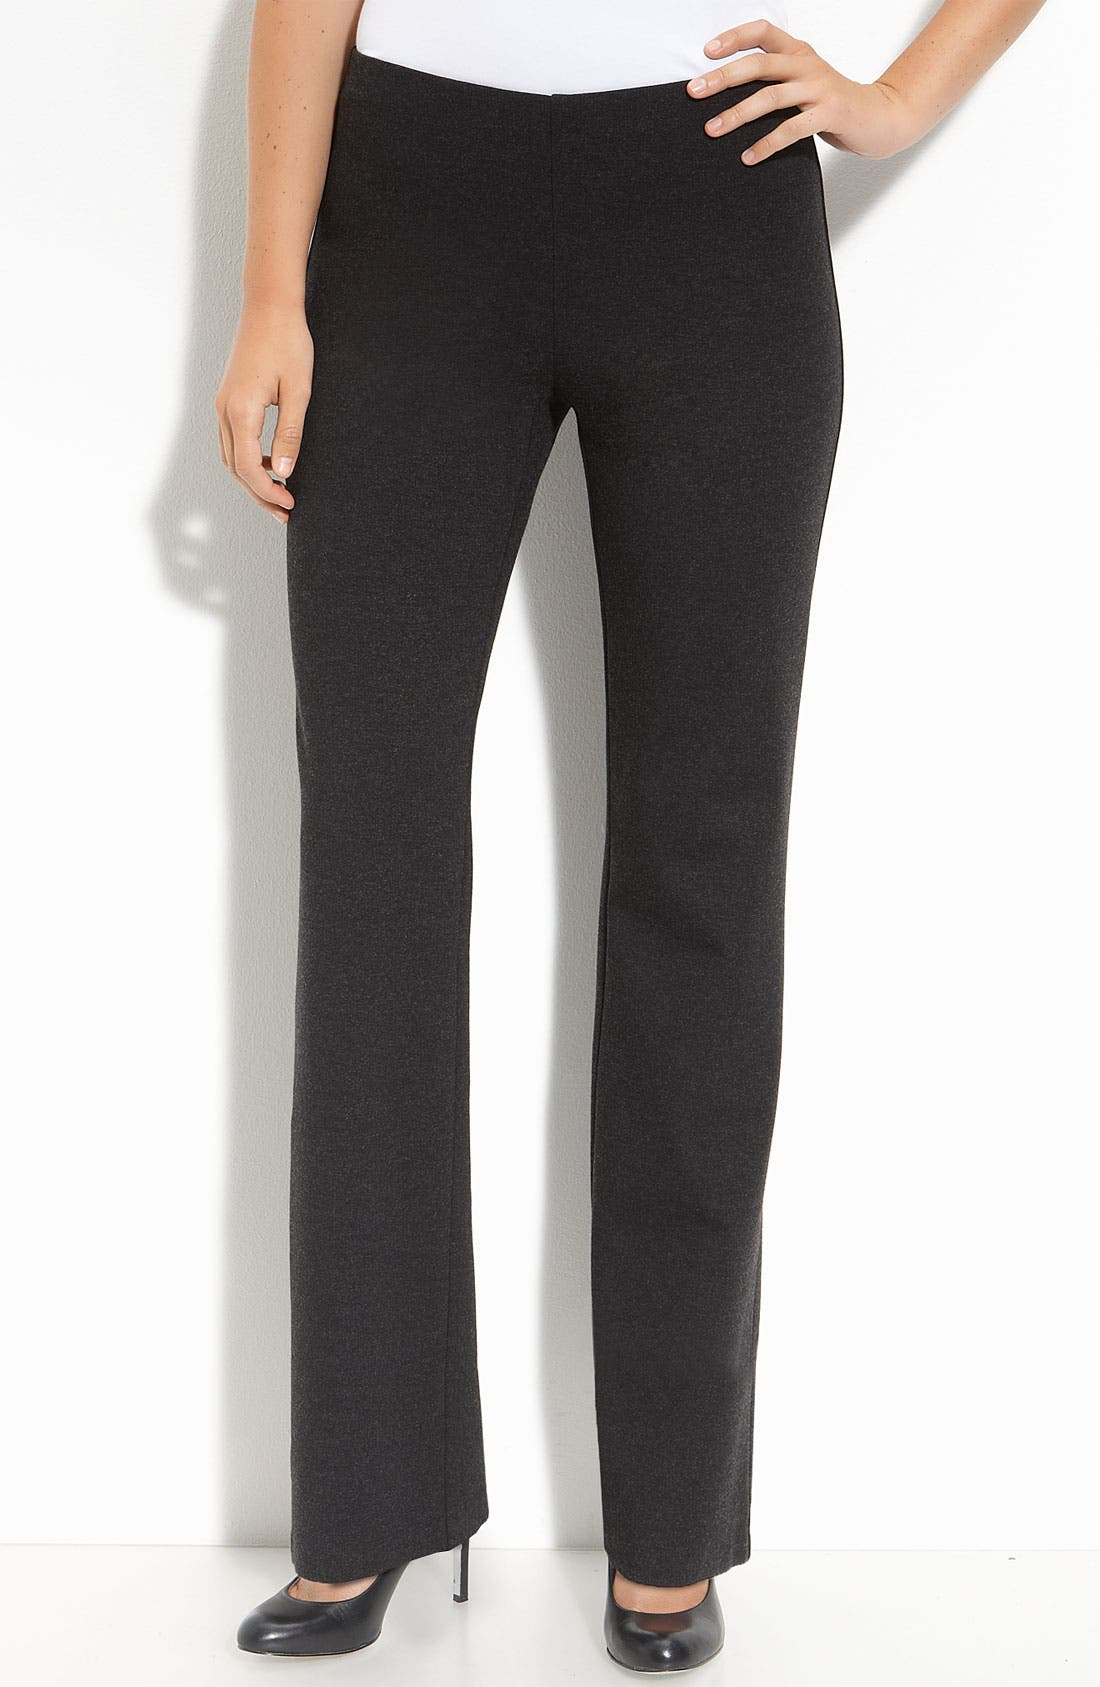 Alternate Image 1 Selected - Eileen Fisher Ponte Knit Pants (Online Exclusive)